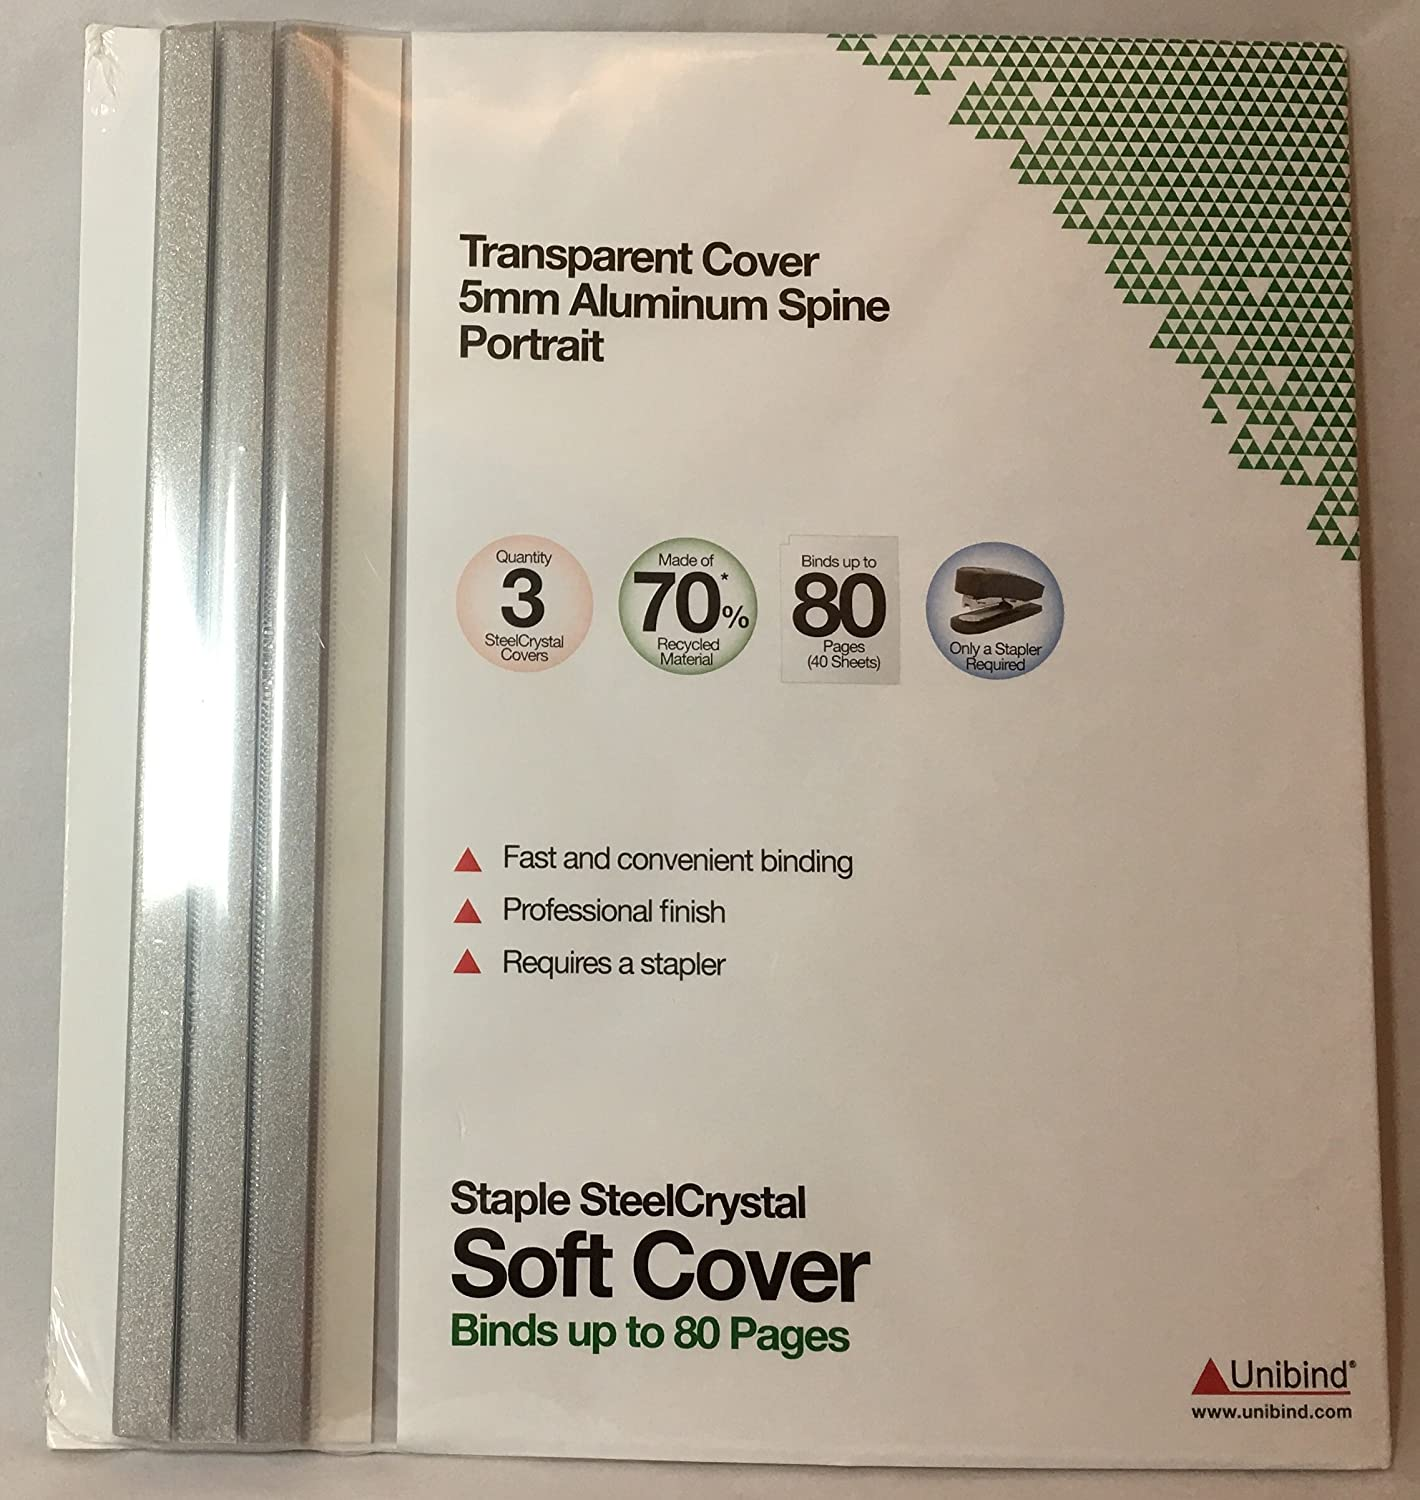 5 mm Transparent Cover// Aluminum Spine Unibind Staple SteelCrystal Soft Cover Binds up to 80 pages//40 Sheets Quantity: 6 Soft Covers